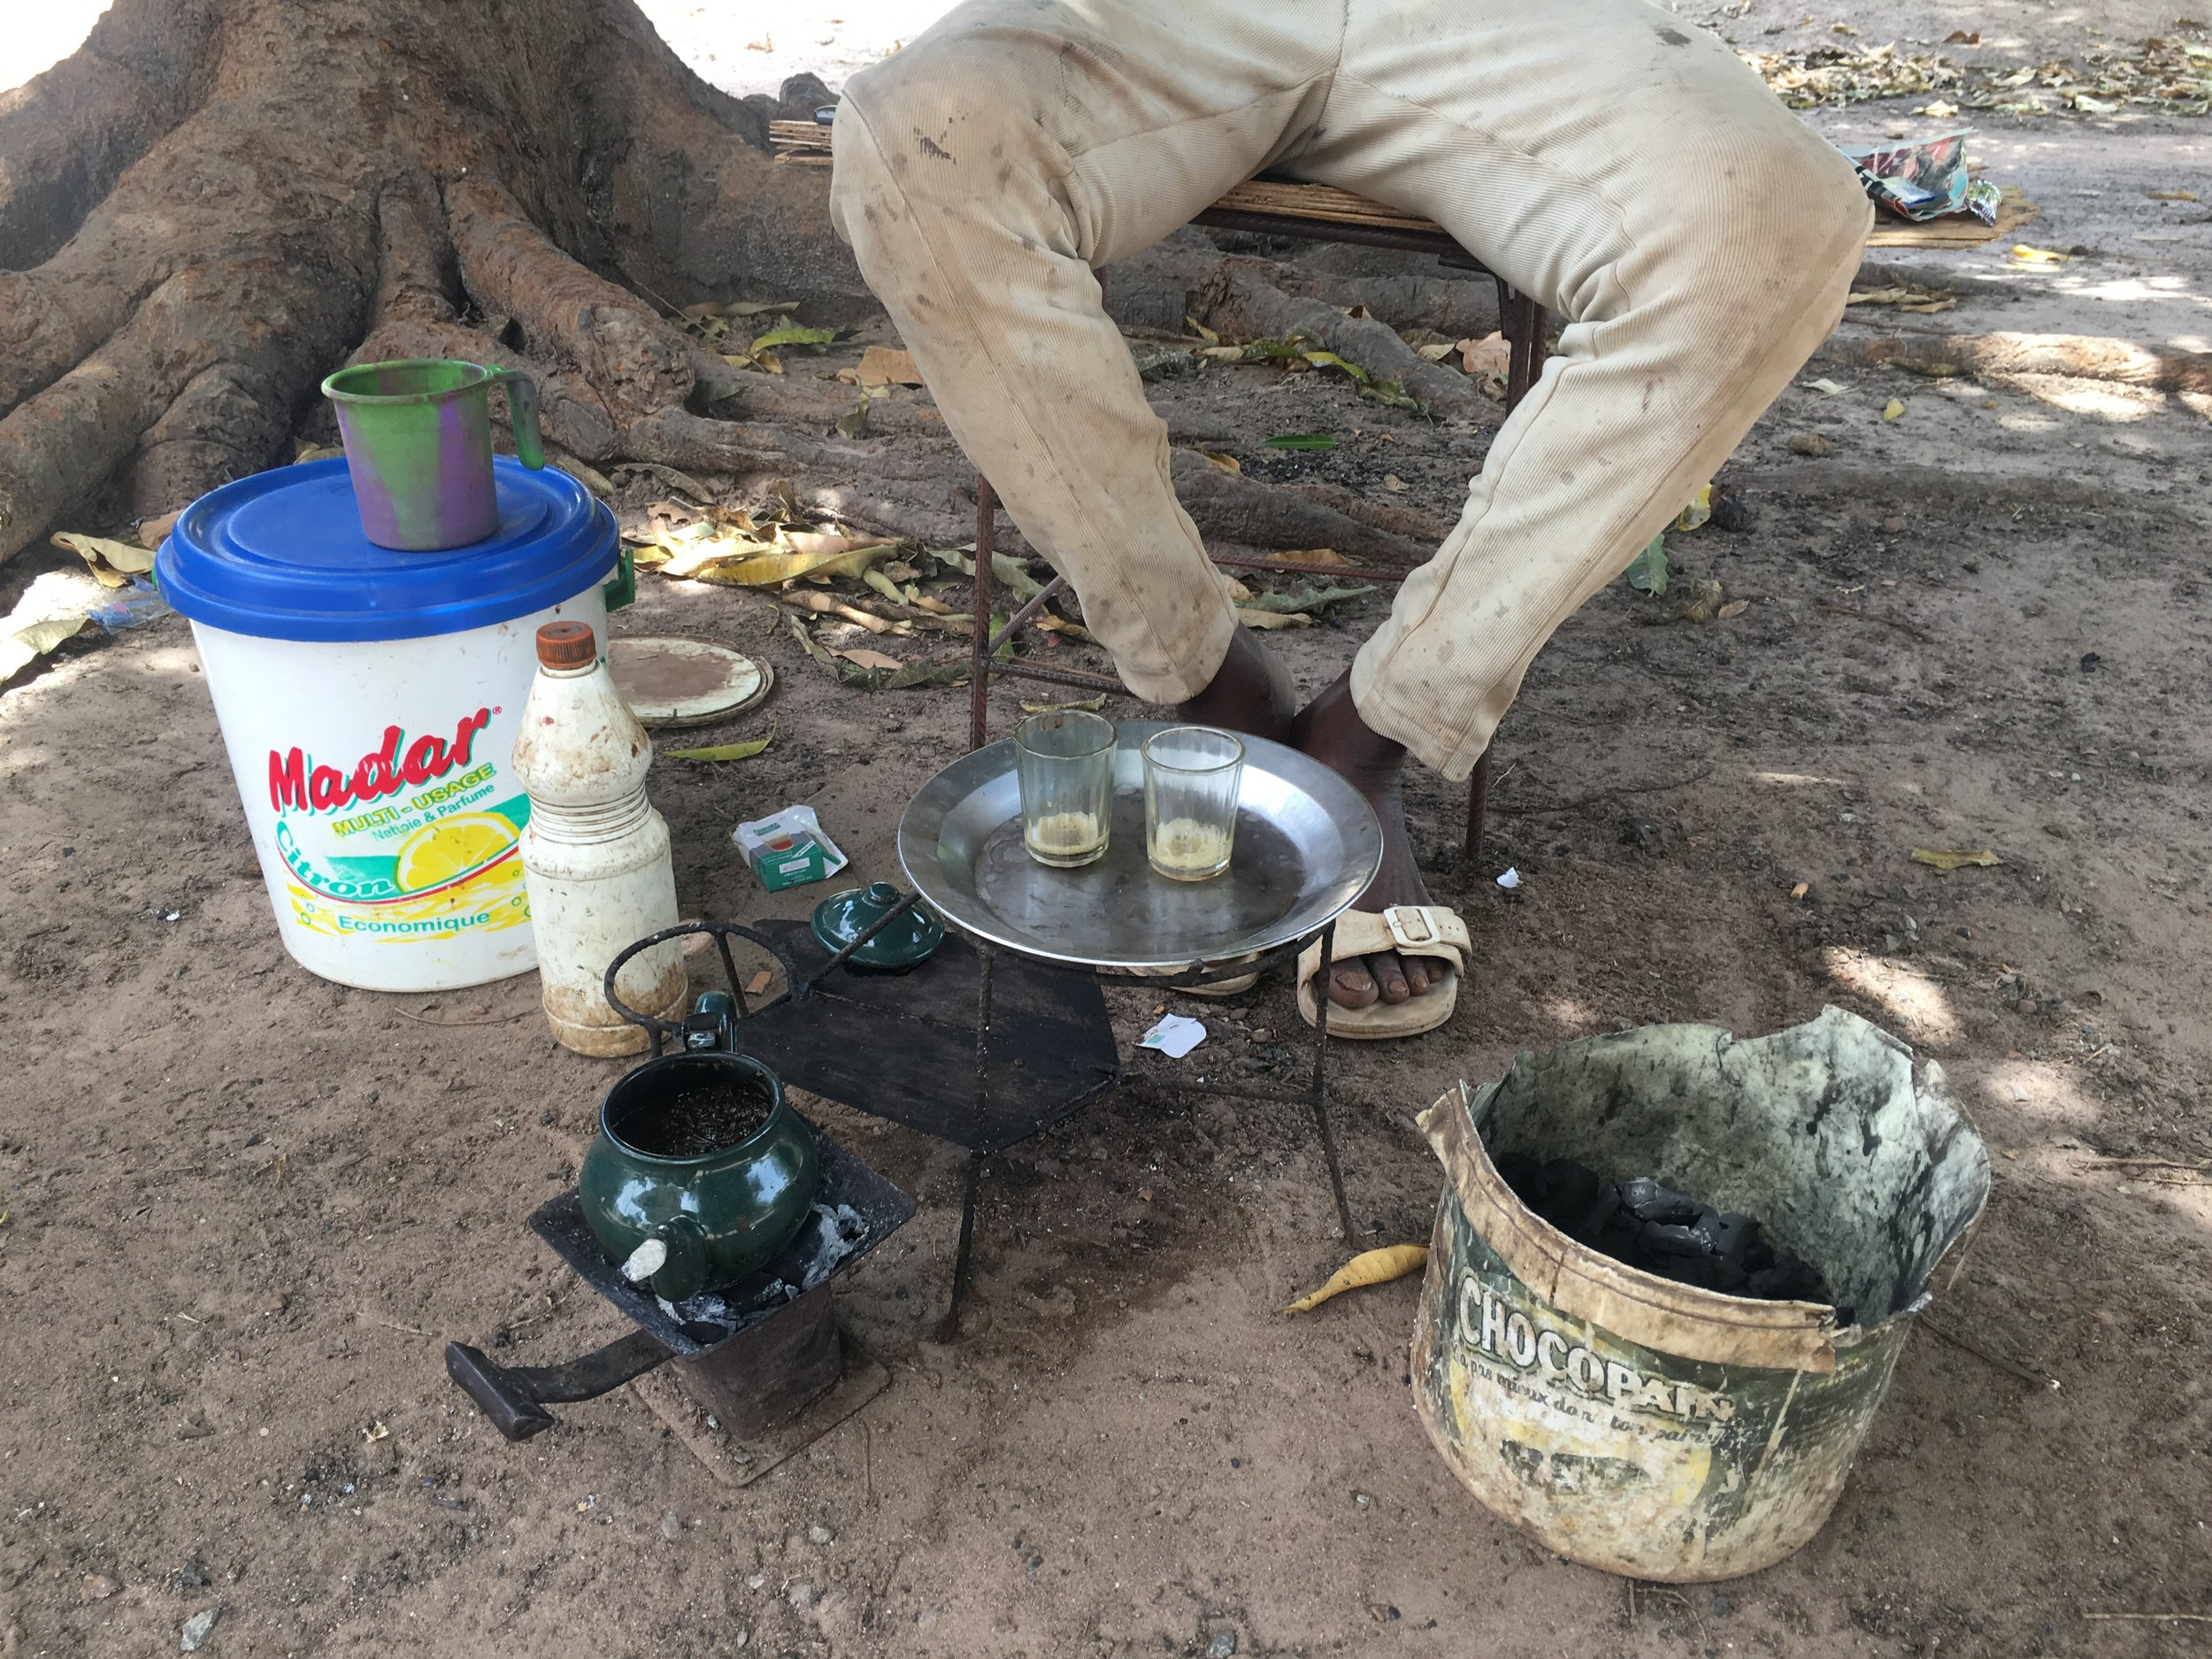 The English-speaking Gambian man didn't want his photo taken, but said I could photograph his tea.